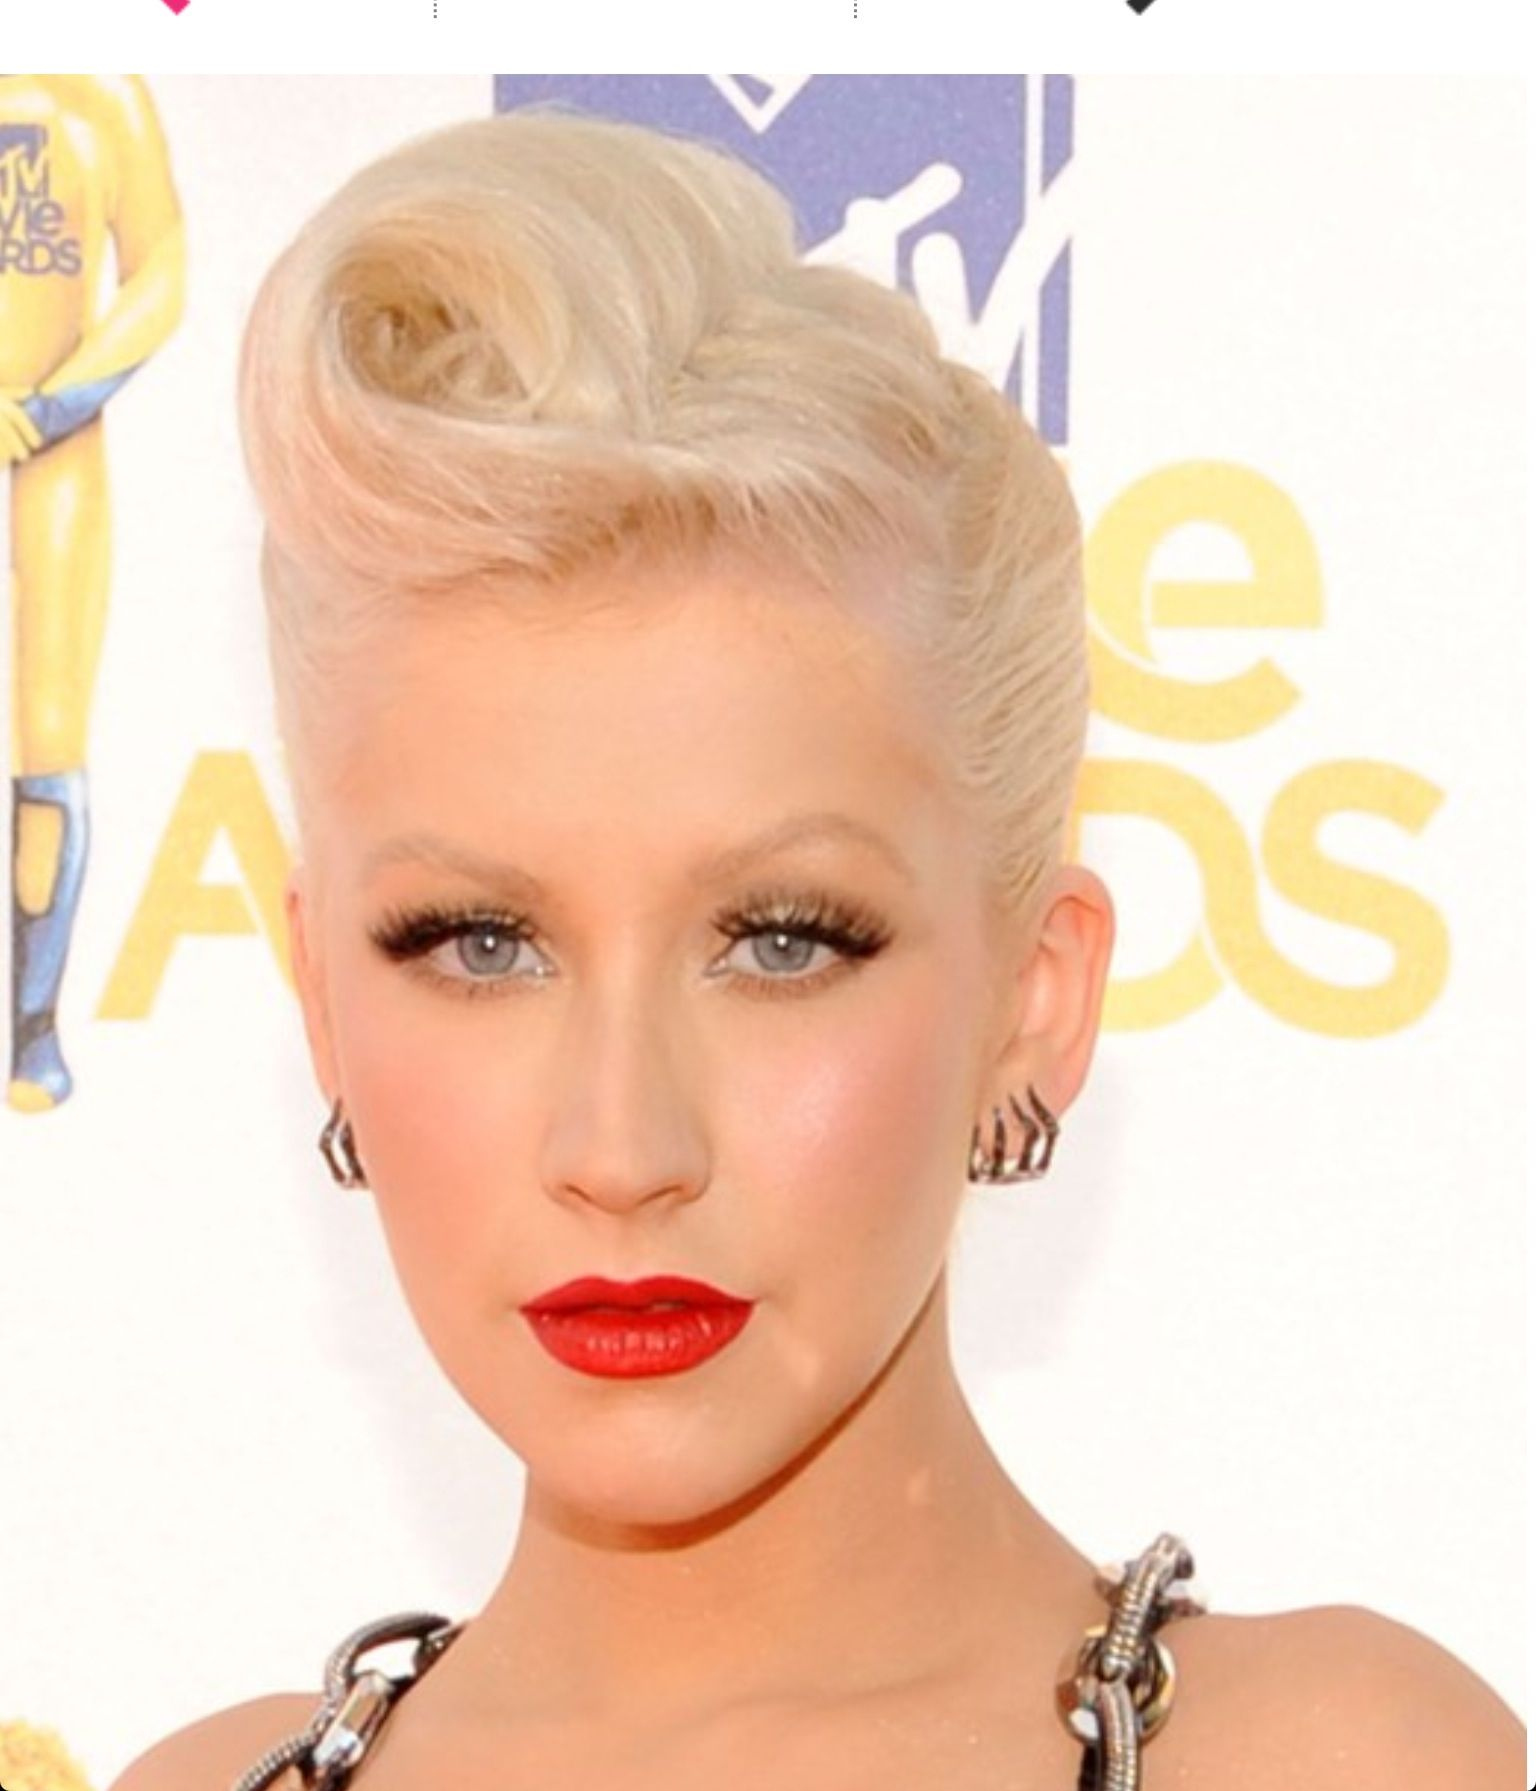 2019 year look- Aguilera Christina short 40s hairstyle pictures